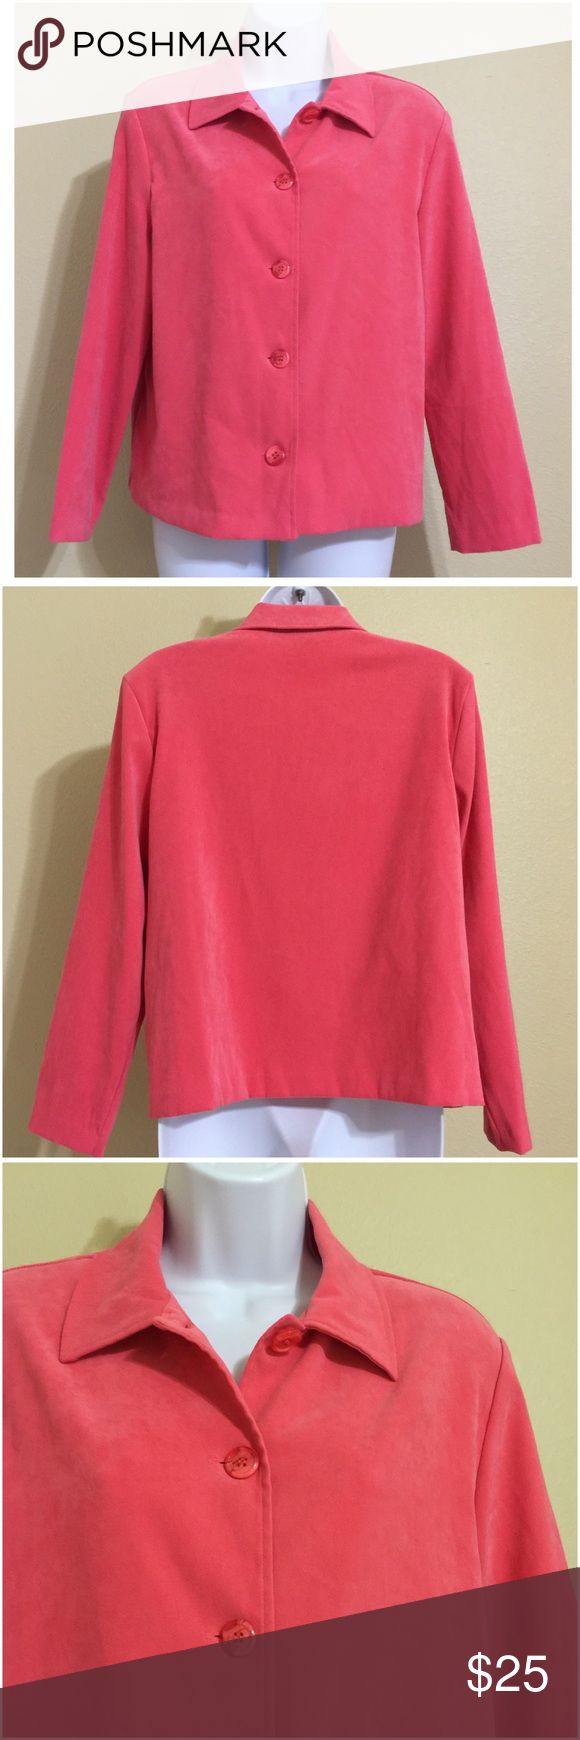 """Briggs Petite Blazer Jacket Size PM • Coral • Removable Shoulder Pads • Machine Wash • Polyester Spandex Blend • 20"""" Pit to Pit • 22"""" Length • 17"""" Shoulder Width • 21"""" Sleeve Seam to Cuff Briggs Jackets & Coats Blazers"""